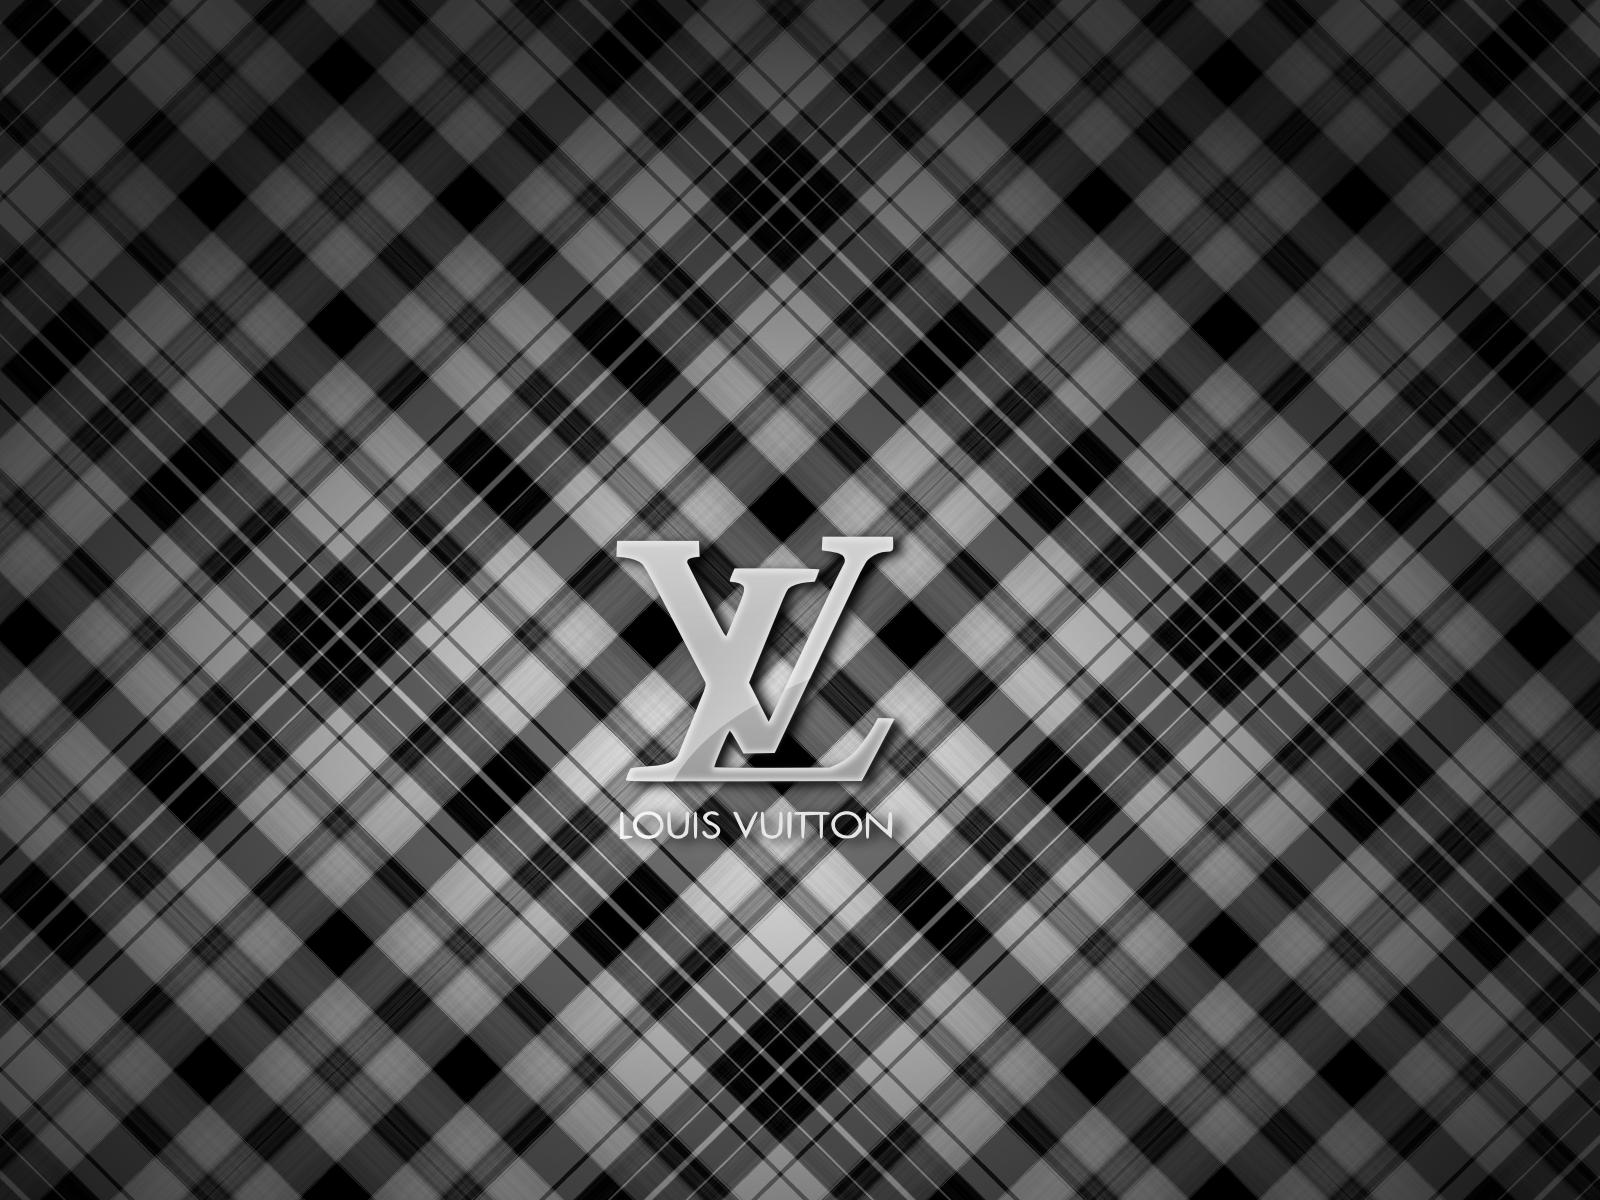 Louis vuitton backgrounds wallpaper cave louis vuitton wallpaper desktop car pictures voltagebd Choice Image